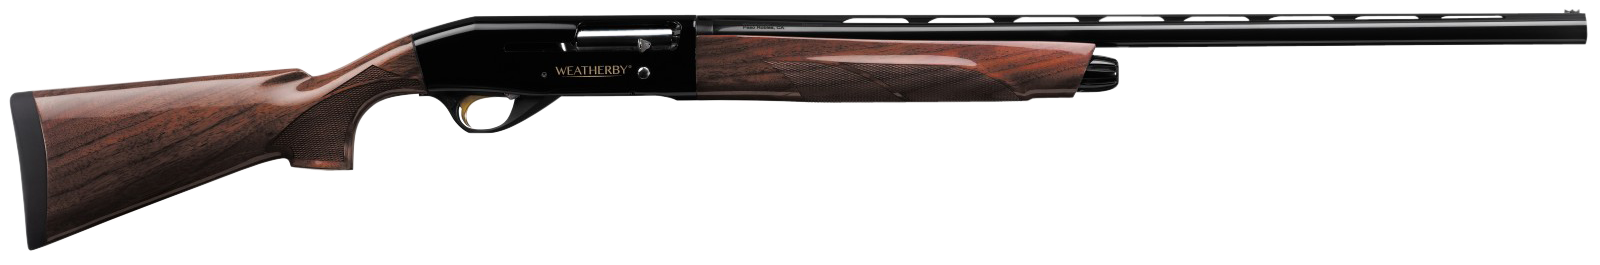 Weatherby EDX2026PGG Element Deluxe Semi-Automatic 20ga 26